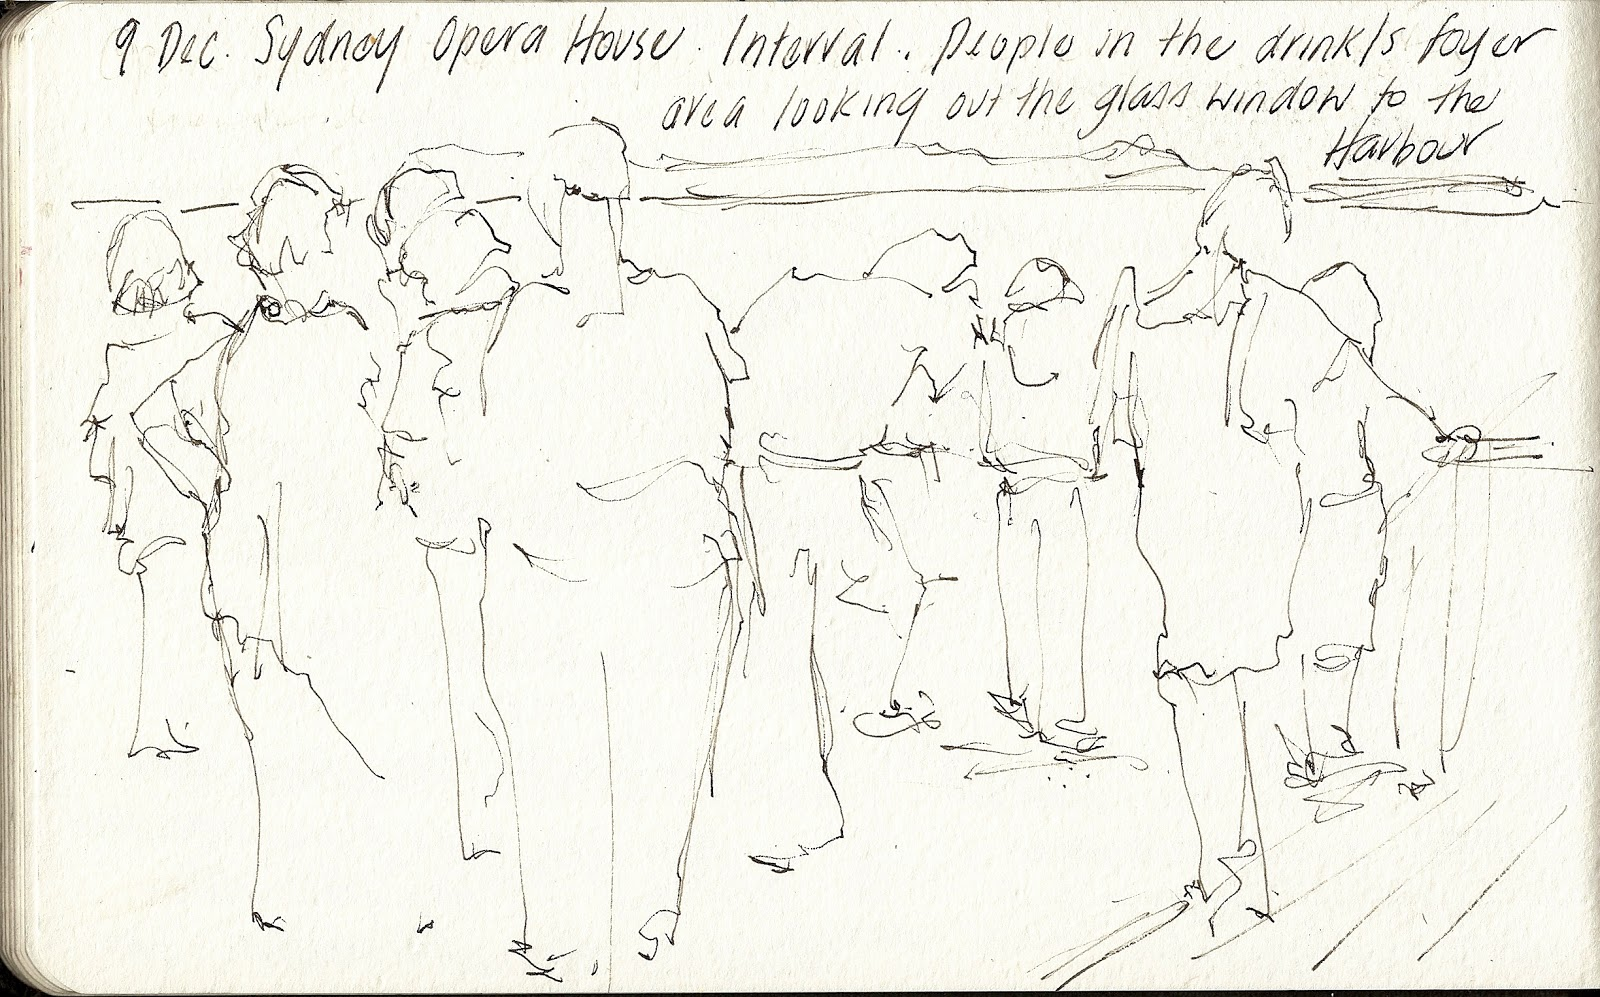 And finally during the concert group of about 12 singers moved onto the stairs infront of me their silhouettes were too tempting to draw and i got my pens